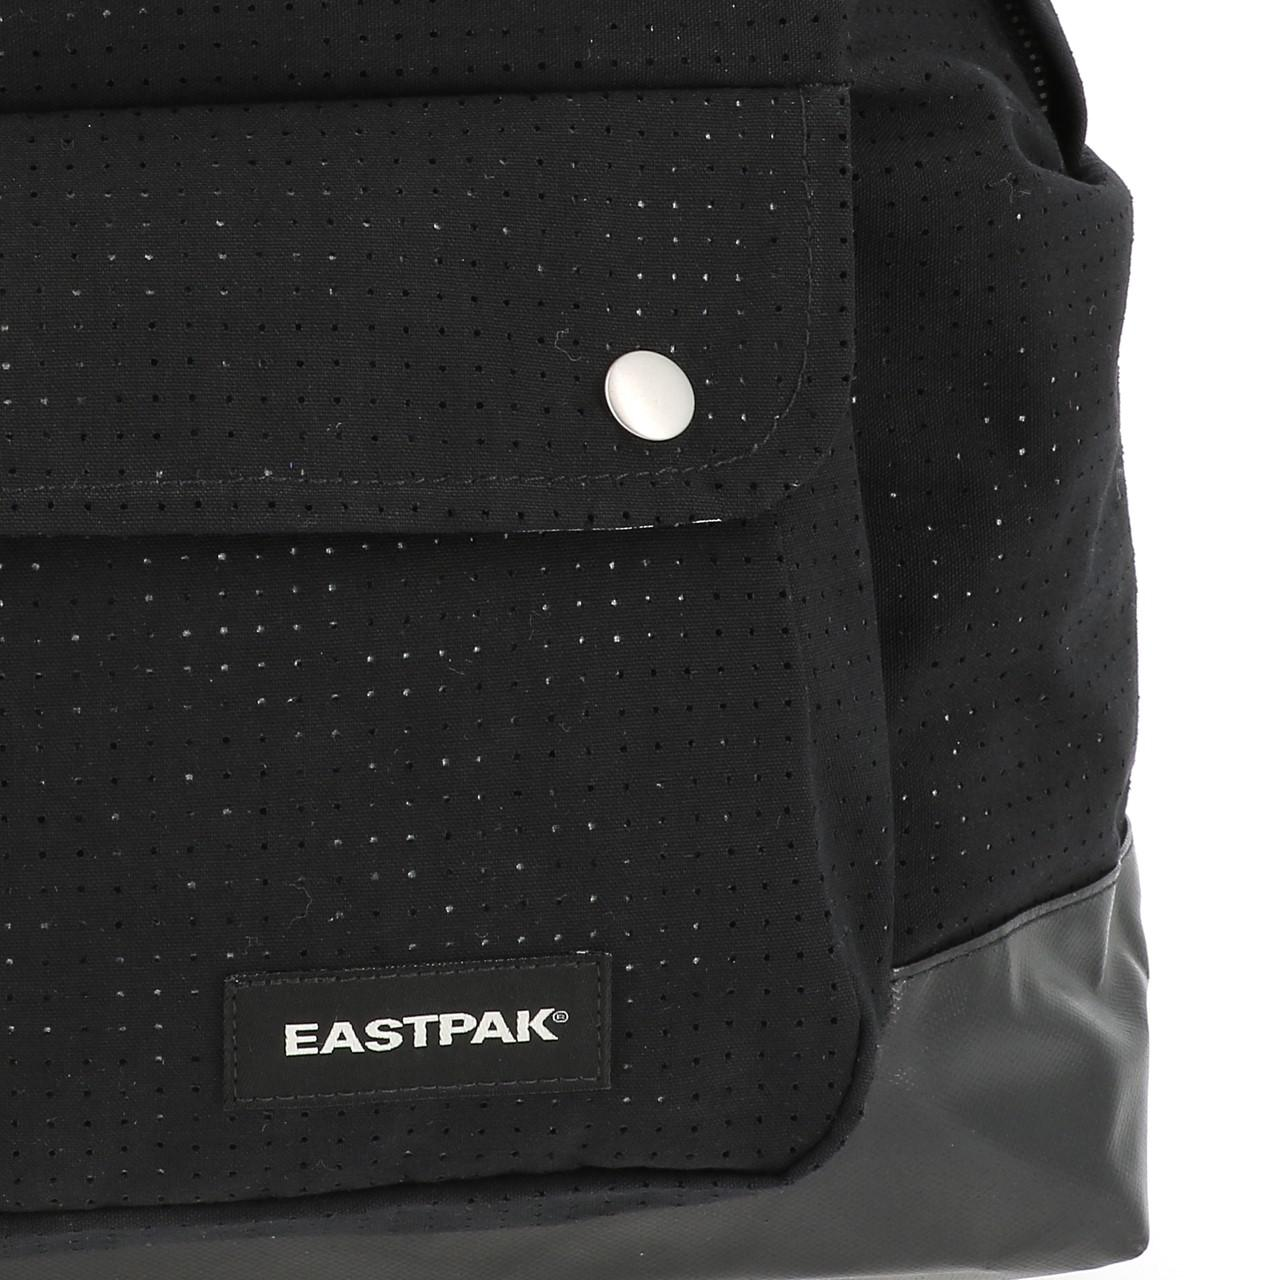 Sac-a-dos-college-Eastpak-Padded-pinched-black-Noir-70649-Neuf miniature 3